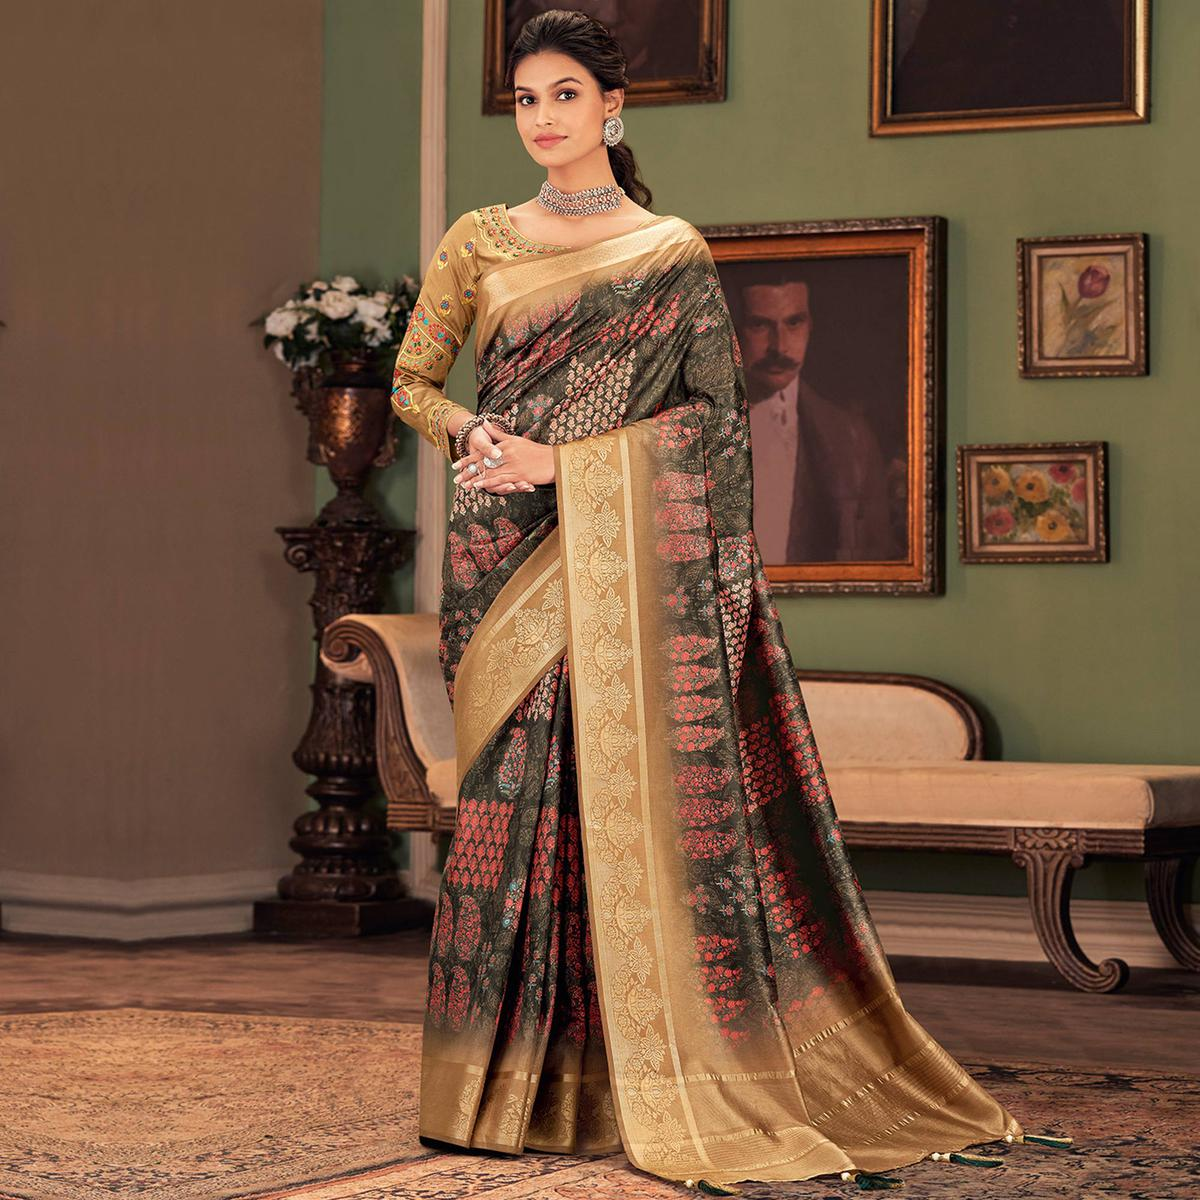 Gorgeous Black-Beige Colored Festive Wear Printed And Woven Border Silk Saree